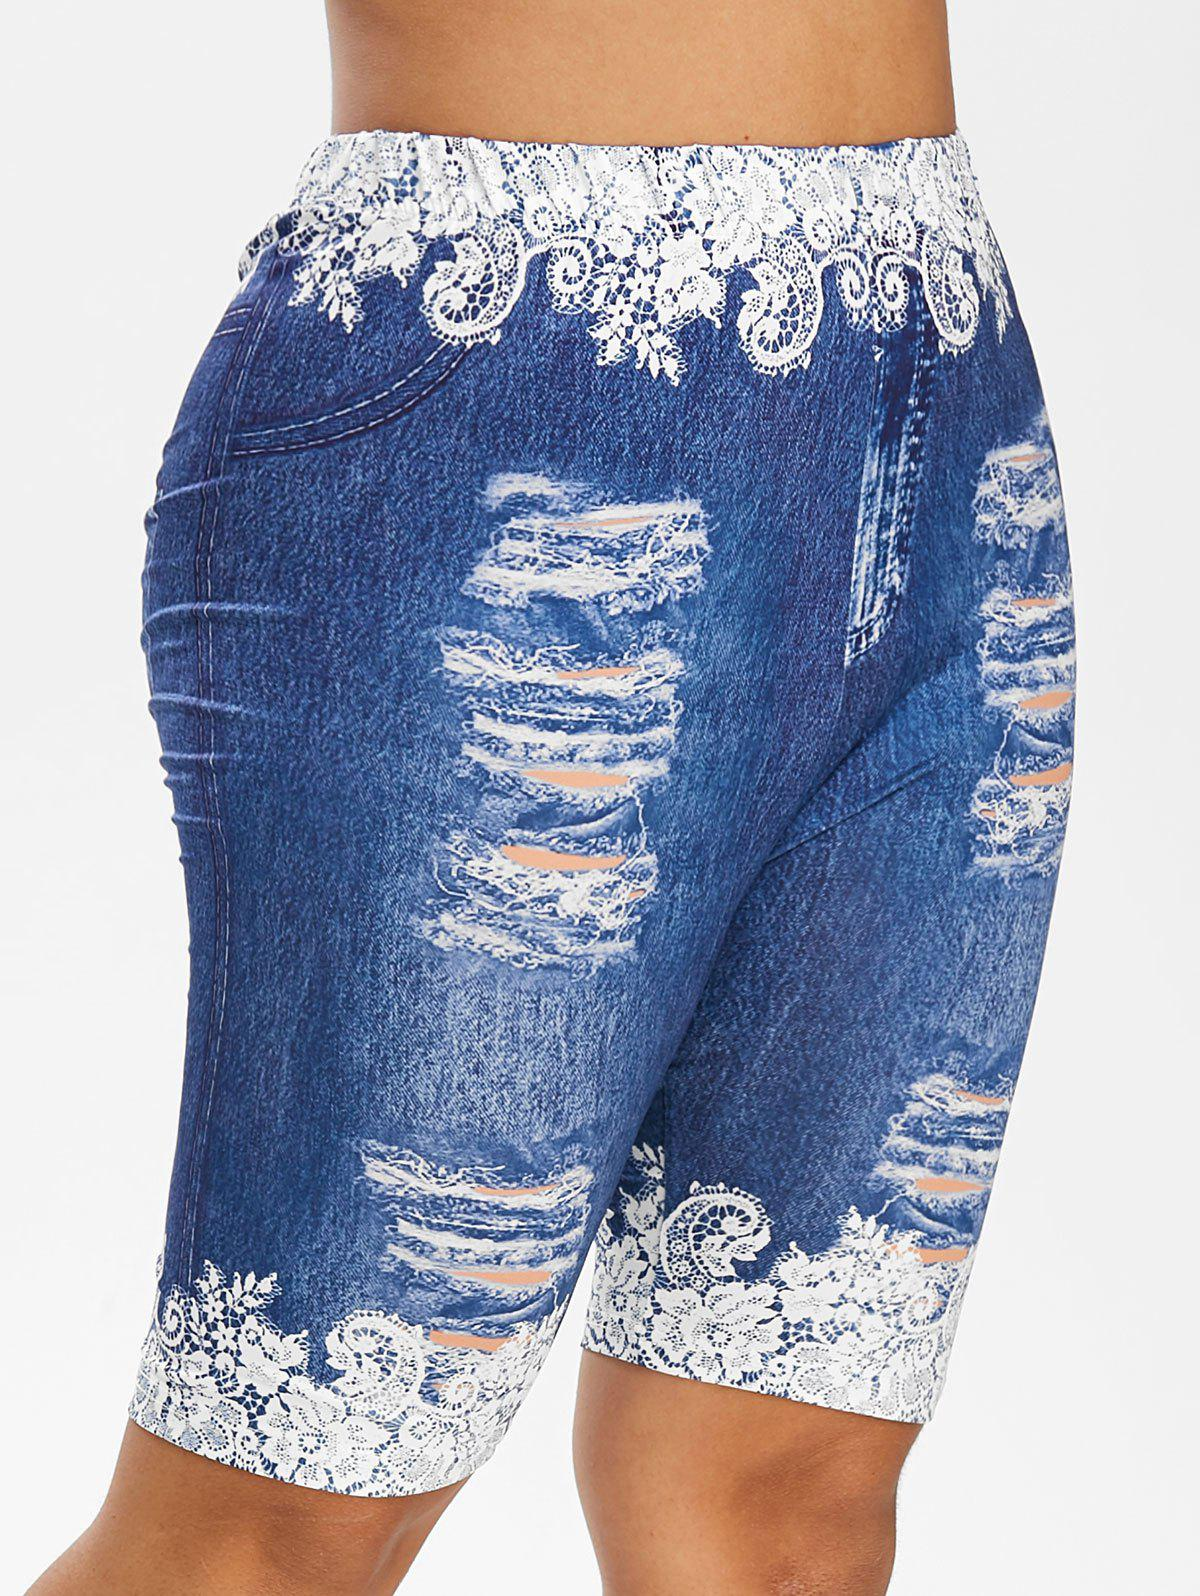 Plus Size Floral Ripped Jeans Printed Fitted Leggings - OCEAN BLUE 2X